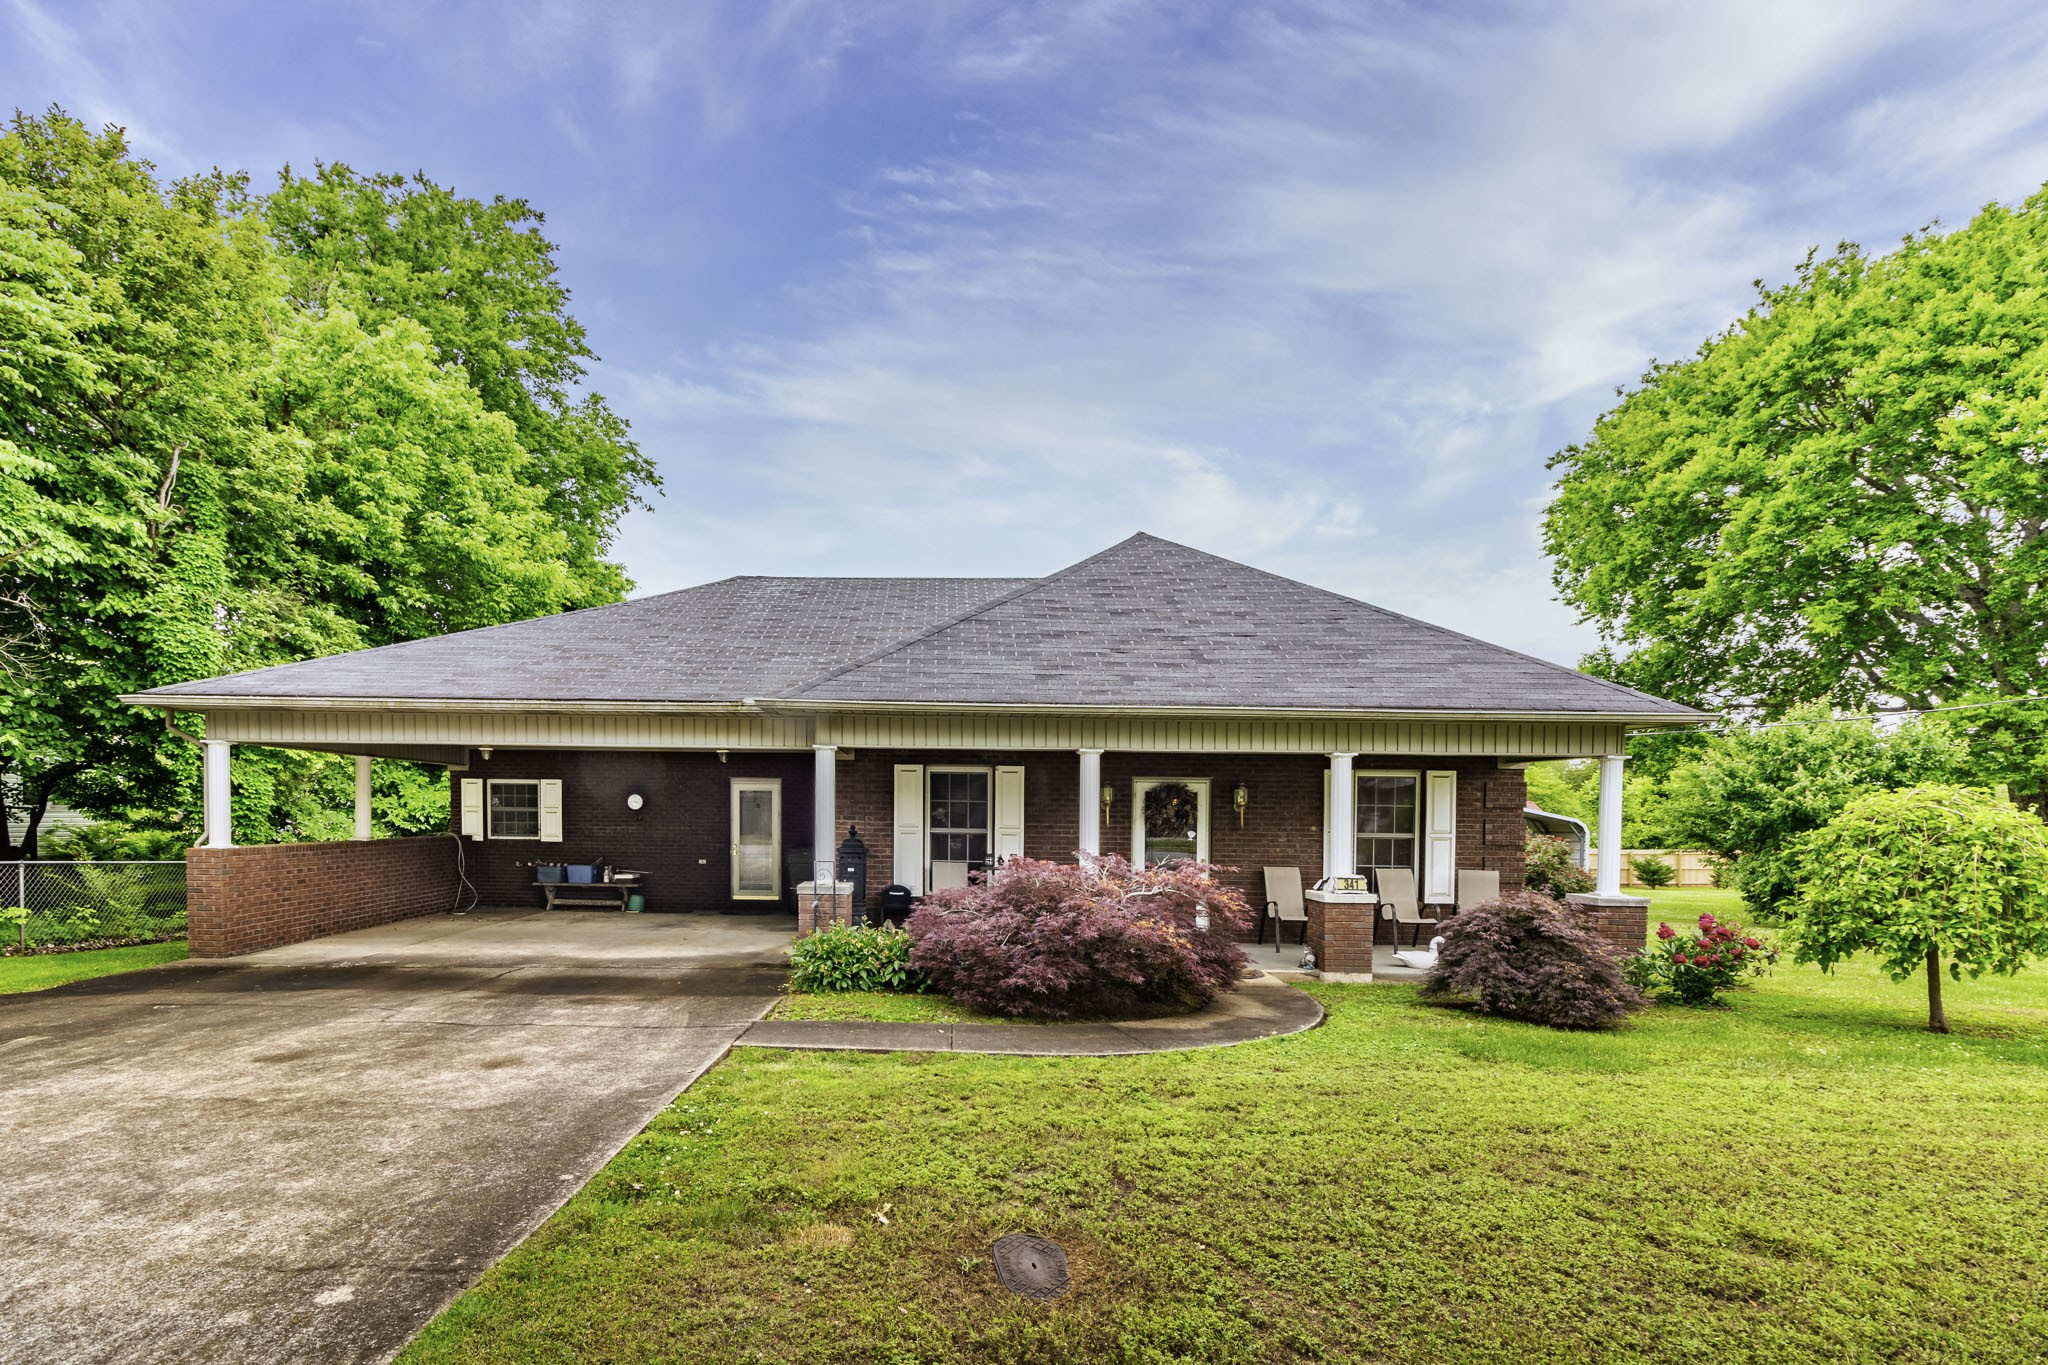 Betty Rigling Property Real Estate Listings Main Image